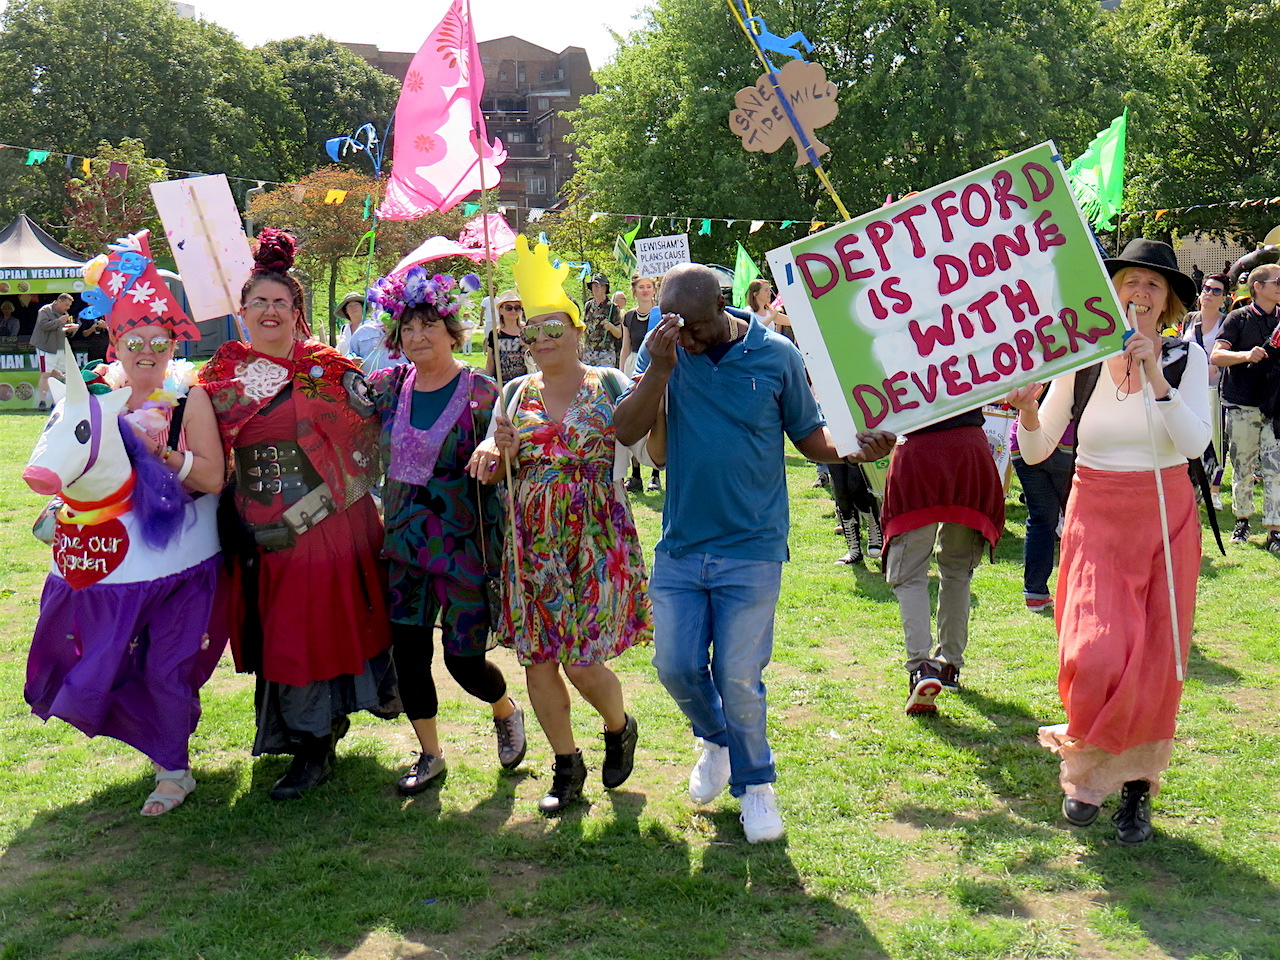 The arrival of a carnival procession of campaigners from the Old Tidemill Garden in Deptford to Party in the Park, a community festival in New Cross on September 1, 2018 (Photo: Andy Worthington).